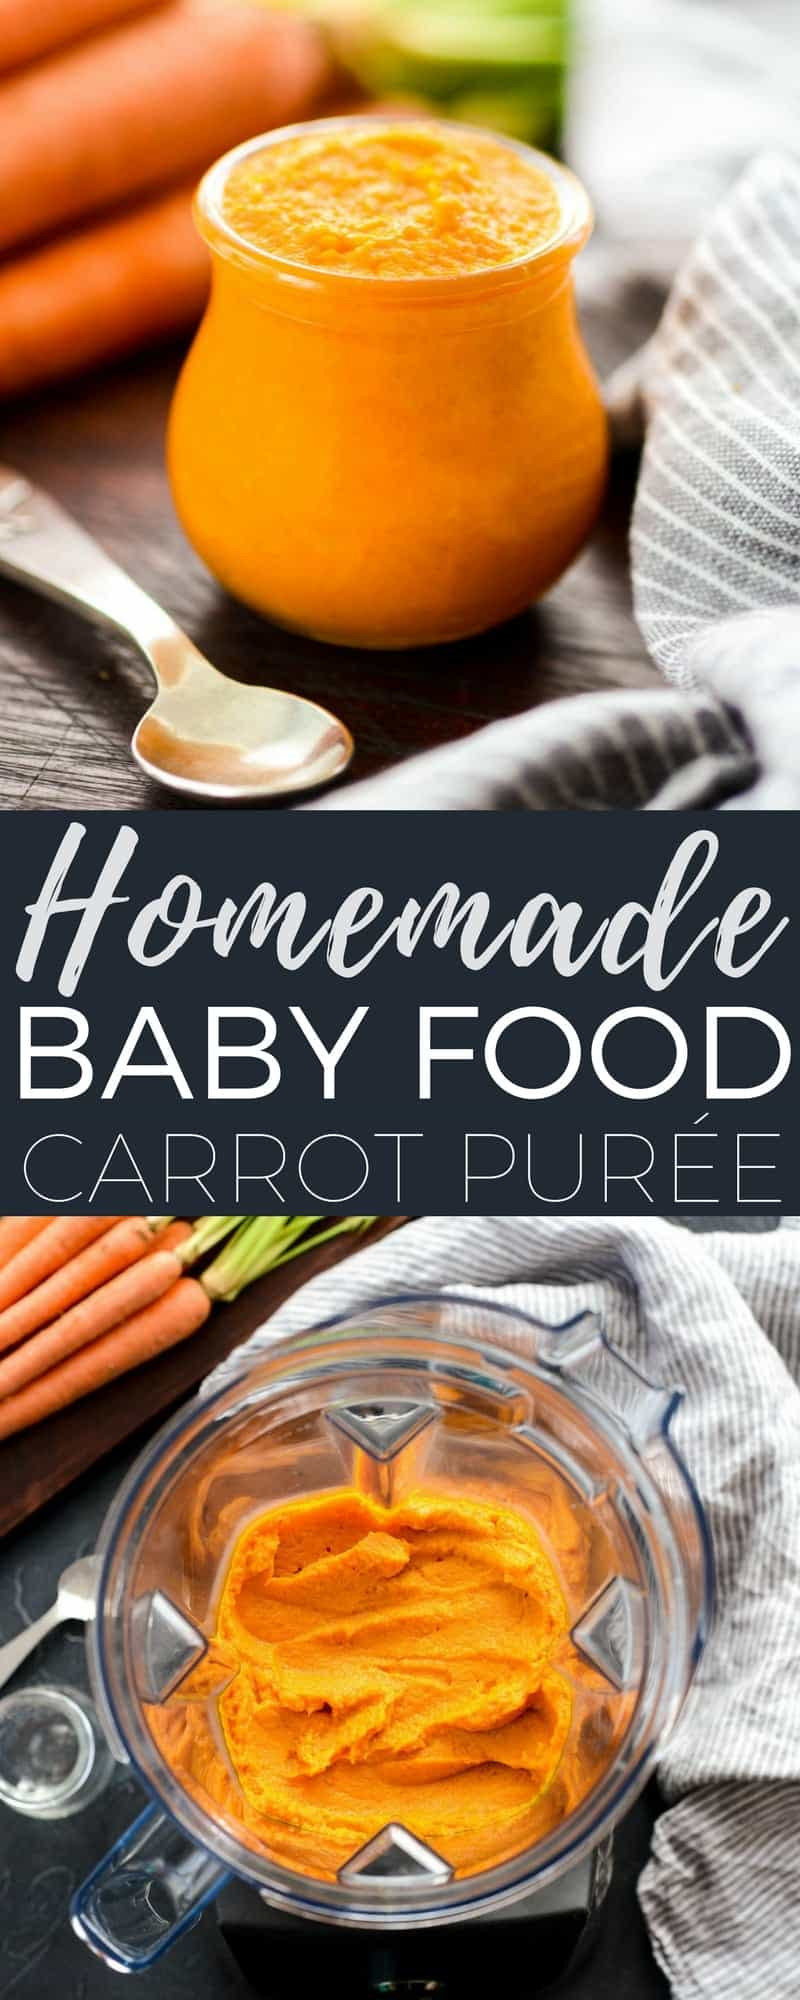 Homemade Baby Food Carrots are so easy to make and only contain two ingredients...organic carrots and water! Plus they taste worlds better than store-bought varieties! #babyfood #homemade #carrots #vitamix #blender